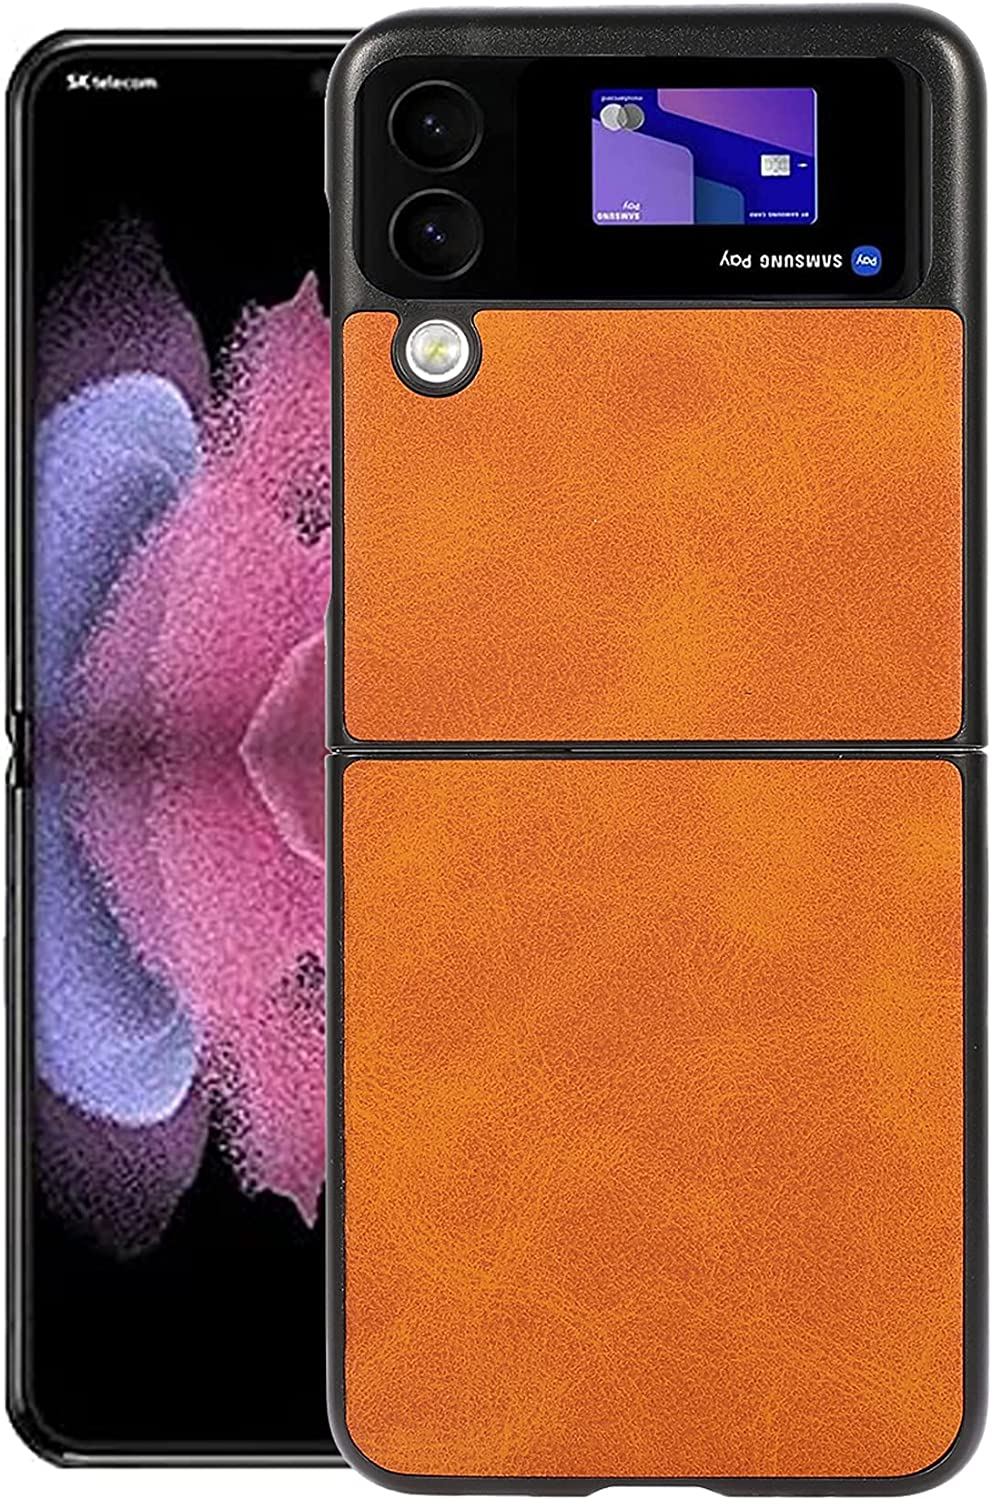 Z Flip 3 Case,Galaxy Z Flip 3 5G Case, DAMONDY Slim Thin Business PU Leather Soft Anti-Slip Full Body Protective Phone Cover Cases Compatible with Samsung Galaxy Z Flip 3 5G -Brown